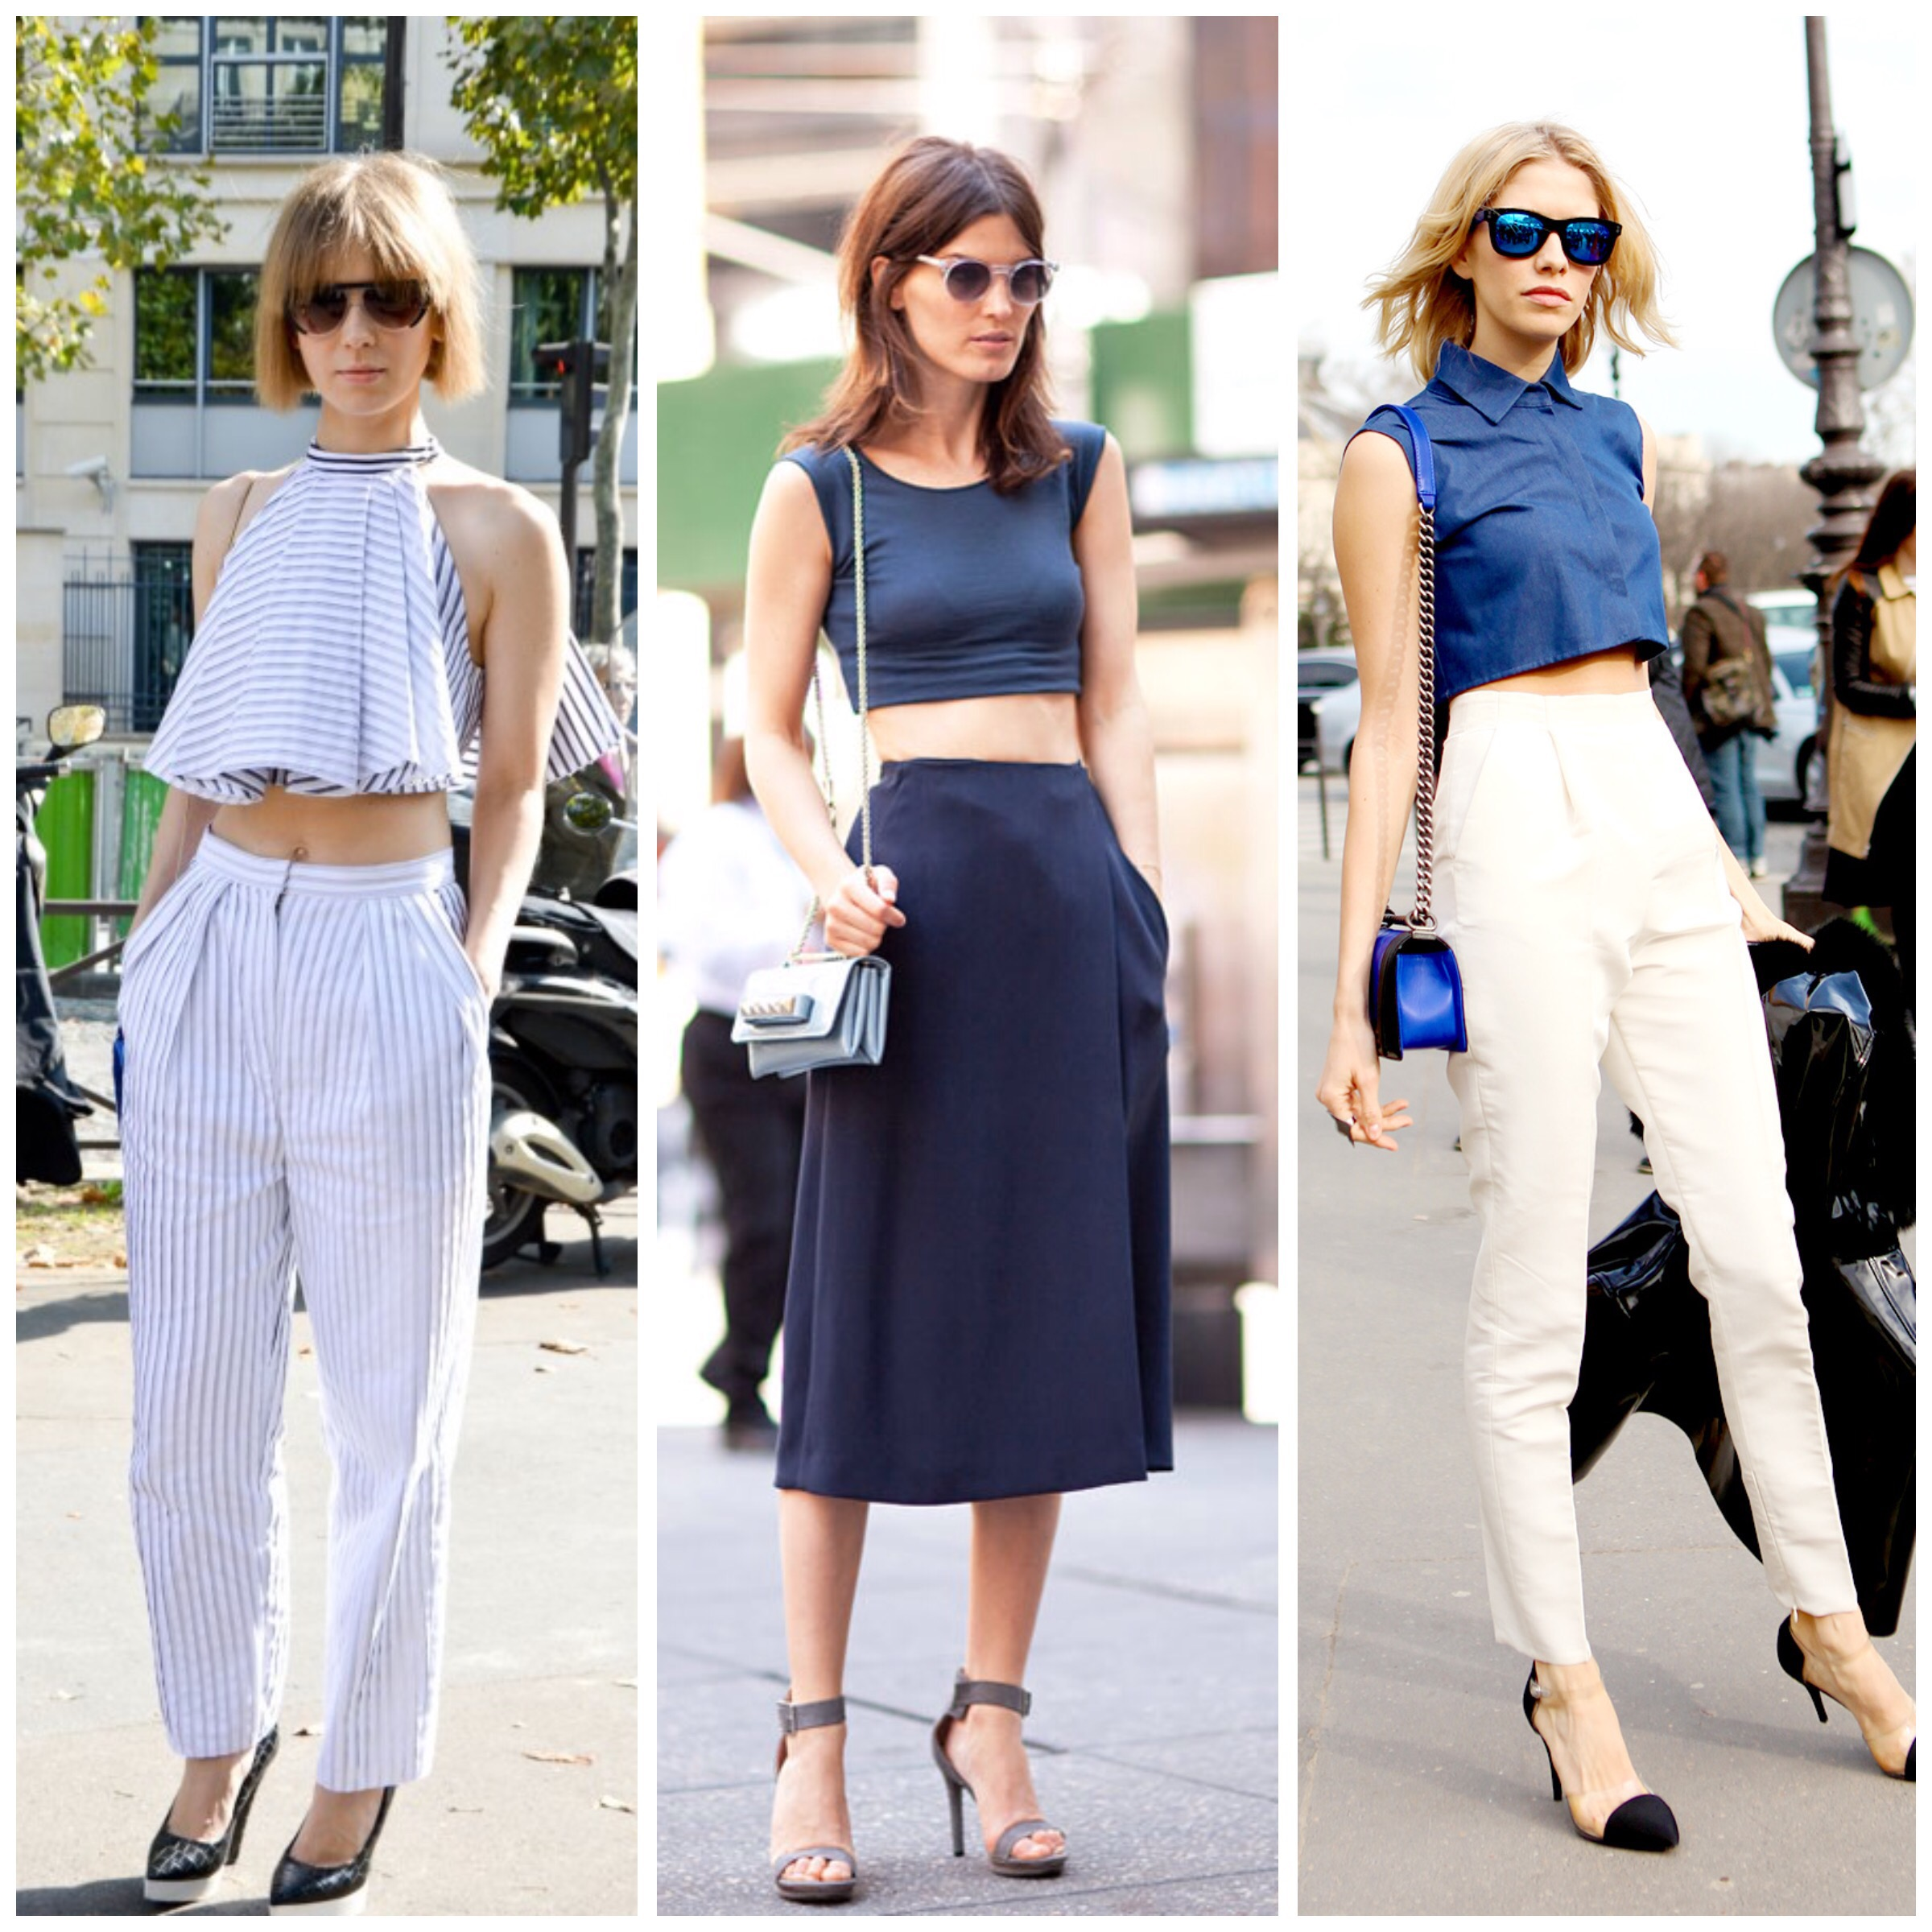 857aa6cf8f The crop top is a trend that is going to continue. Good if matched with  high rise trousers or skirts, but your belly needs to be really flat…if  not, ...